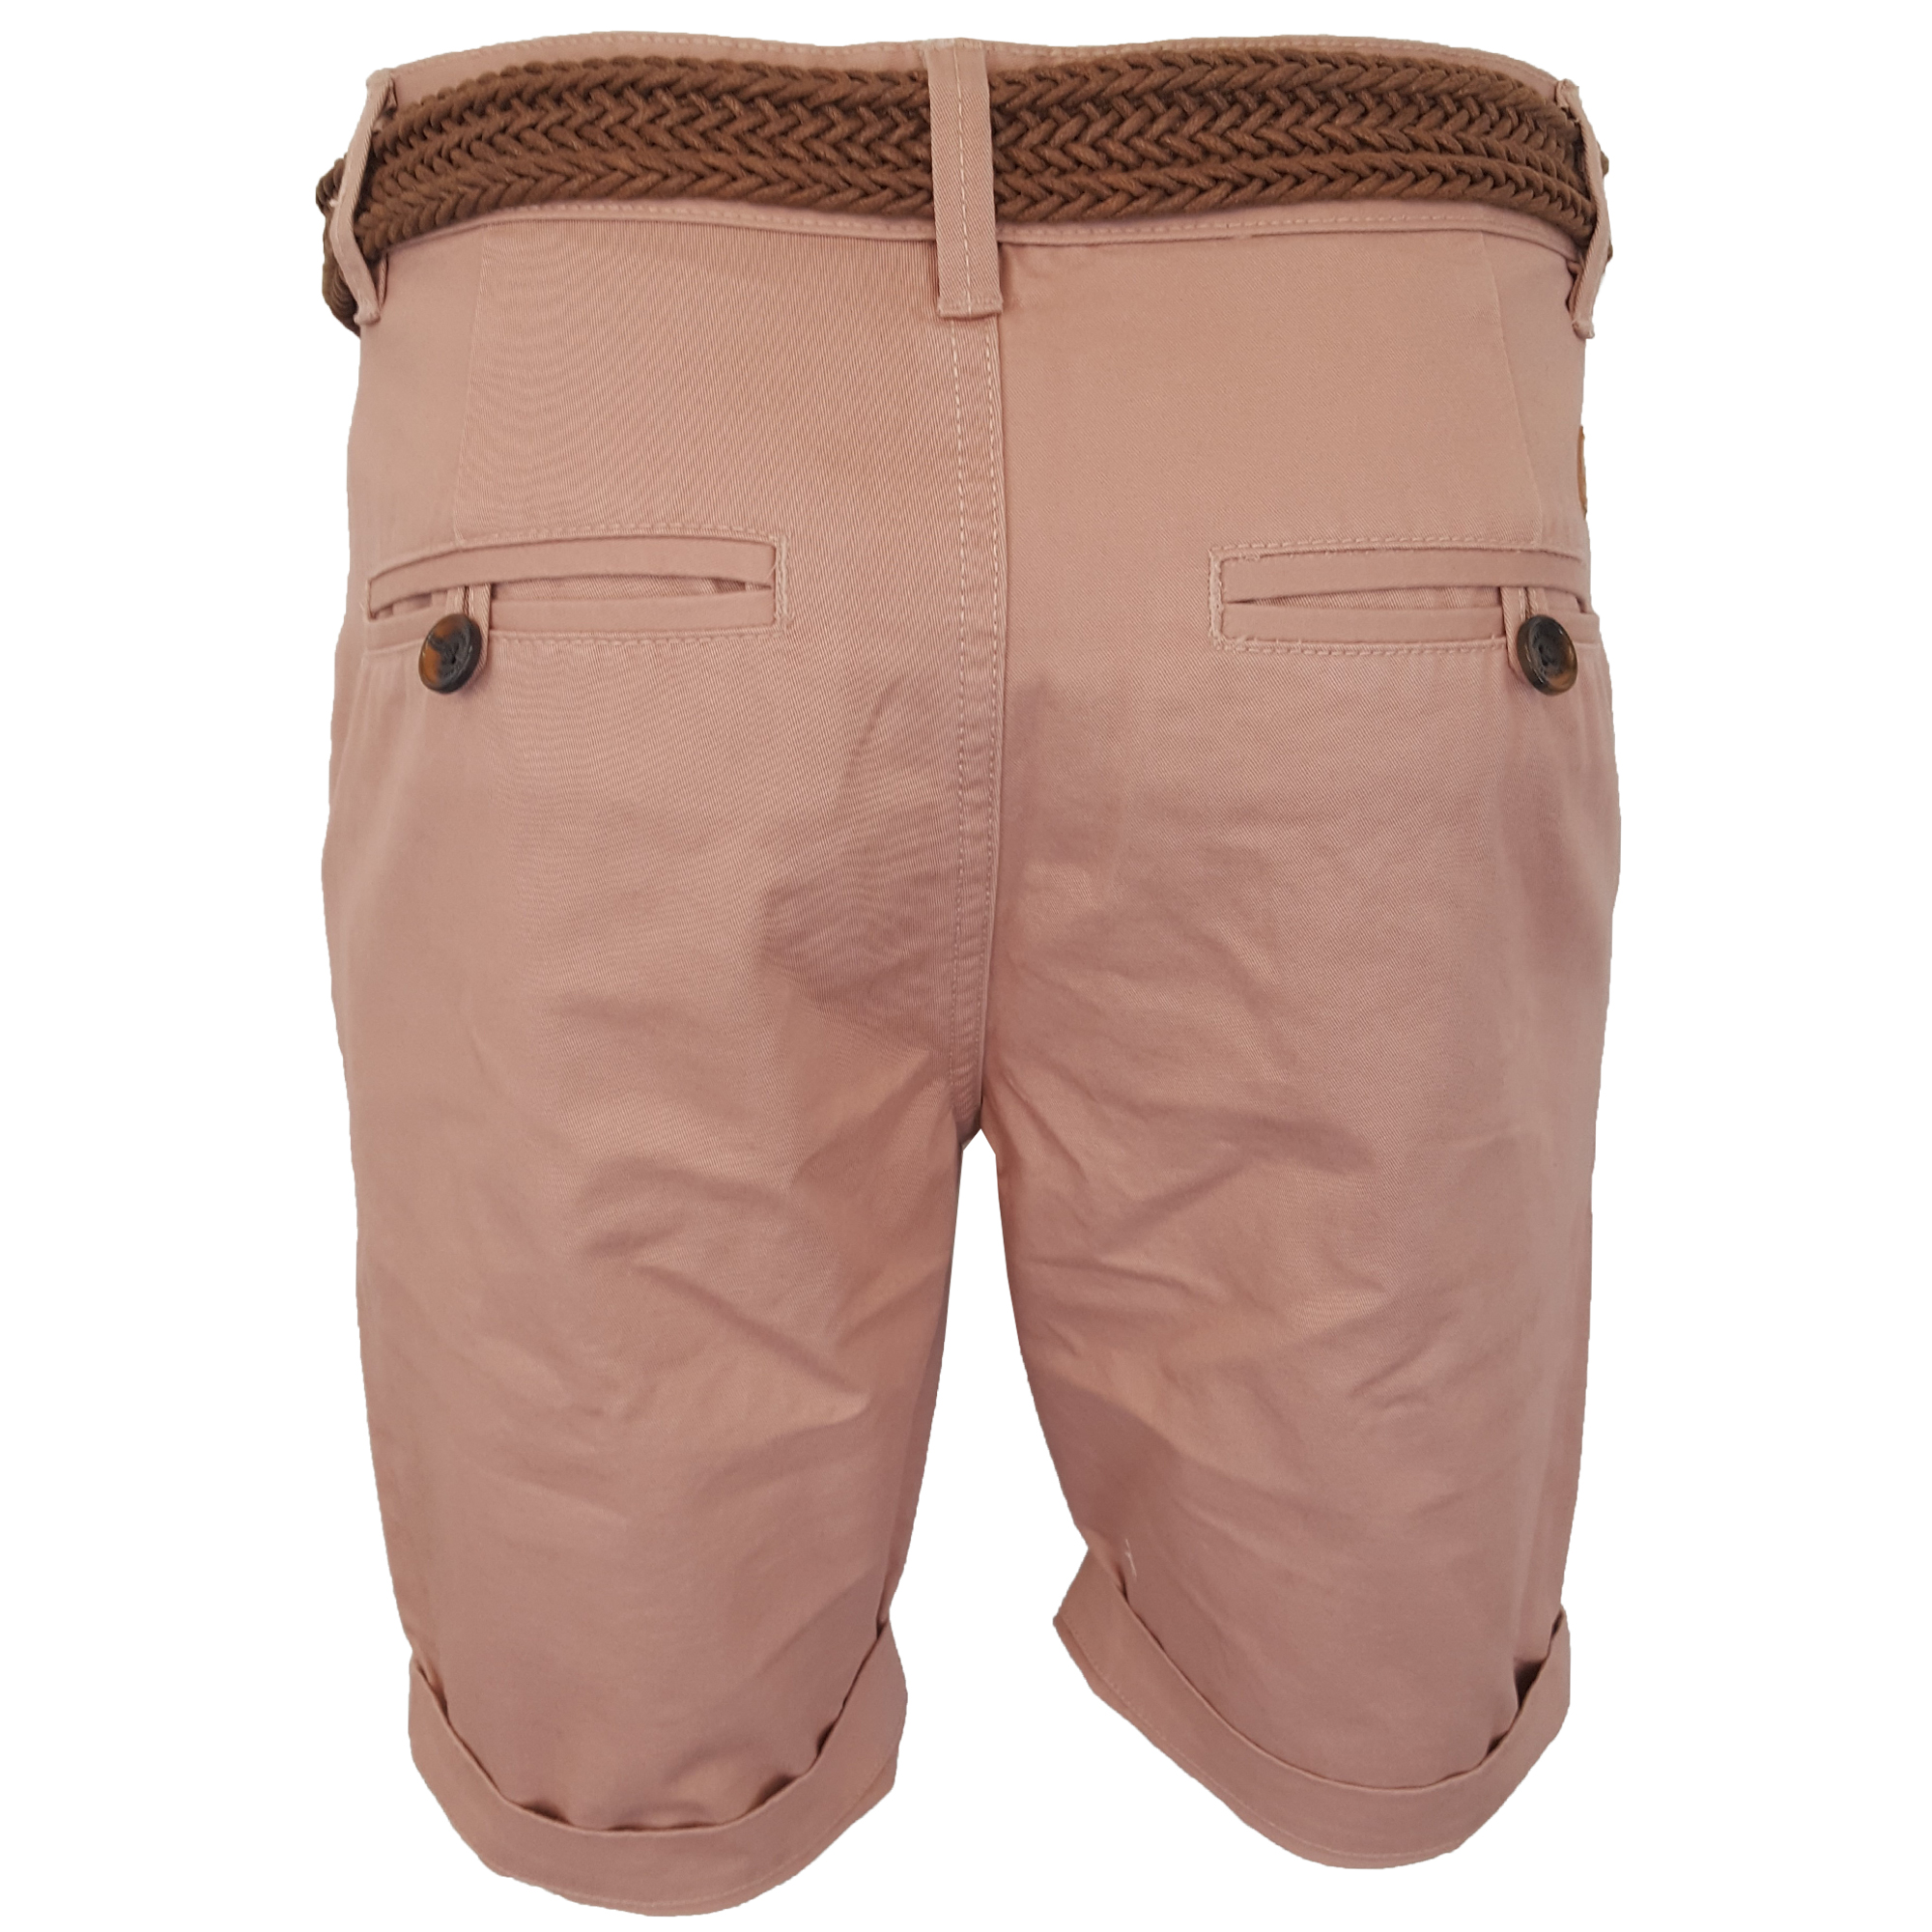 Mens-Chino-Shorts-Threadbare-Cotton-Oxford-Belted-Loyalty-amp-Faith-Seven-Series thumbnail 36